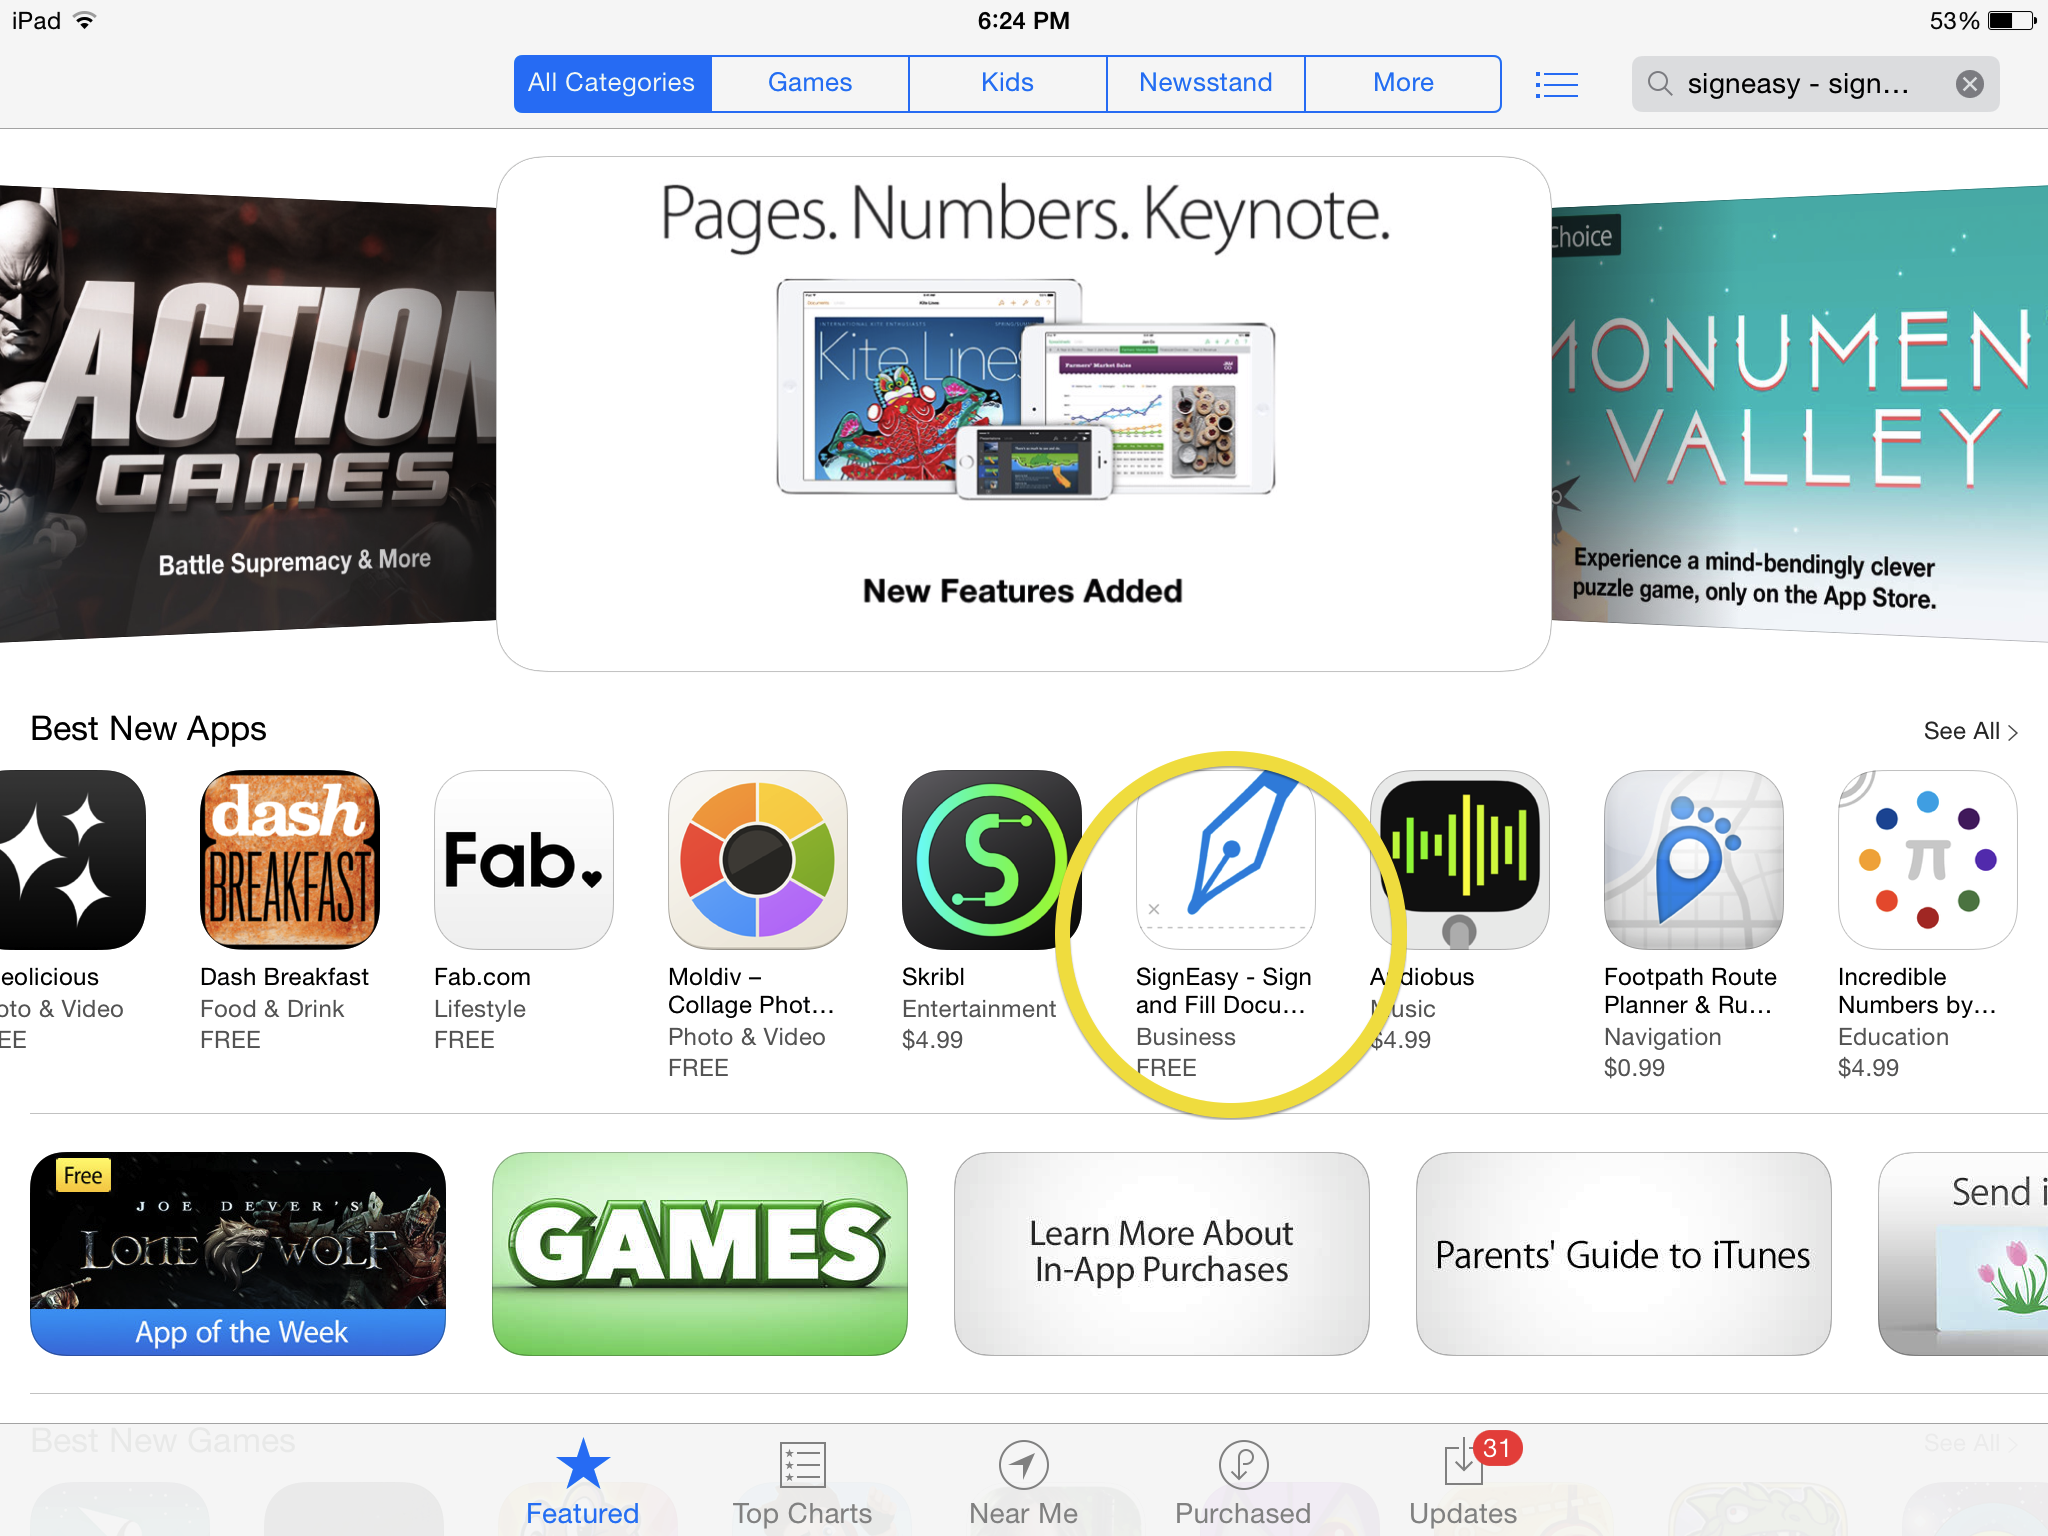 SignEasy is listed among the Best New Apps in the Apple App Store! 04.04.2014